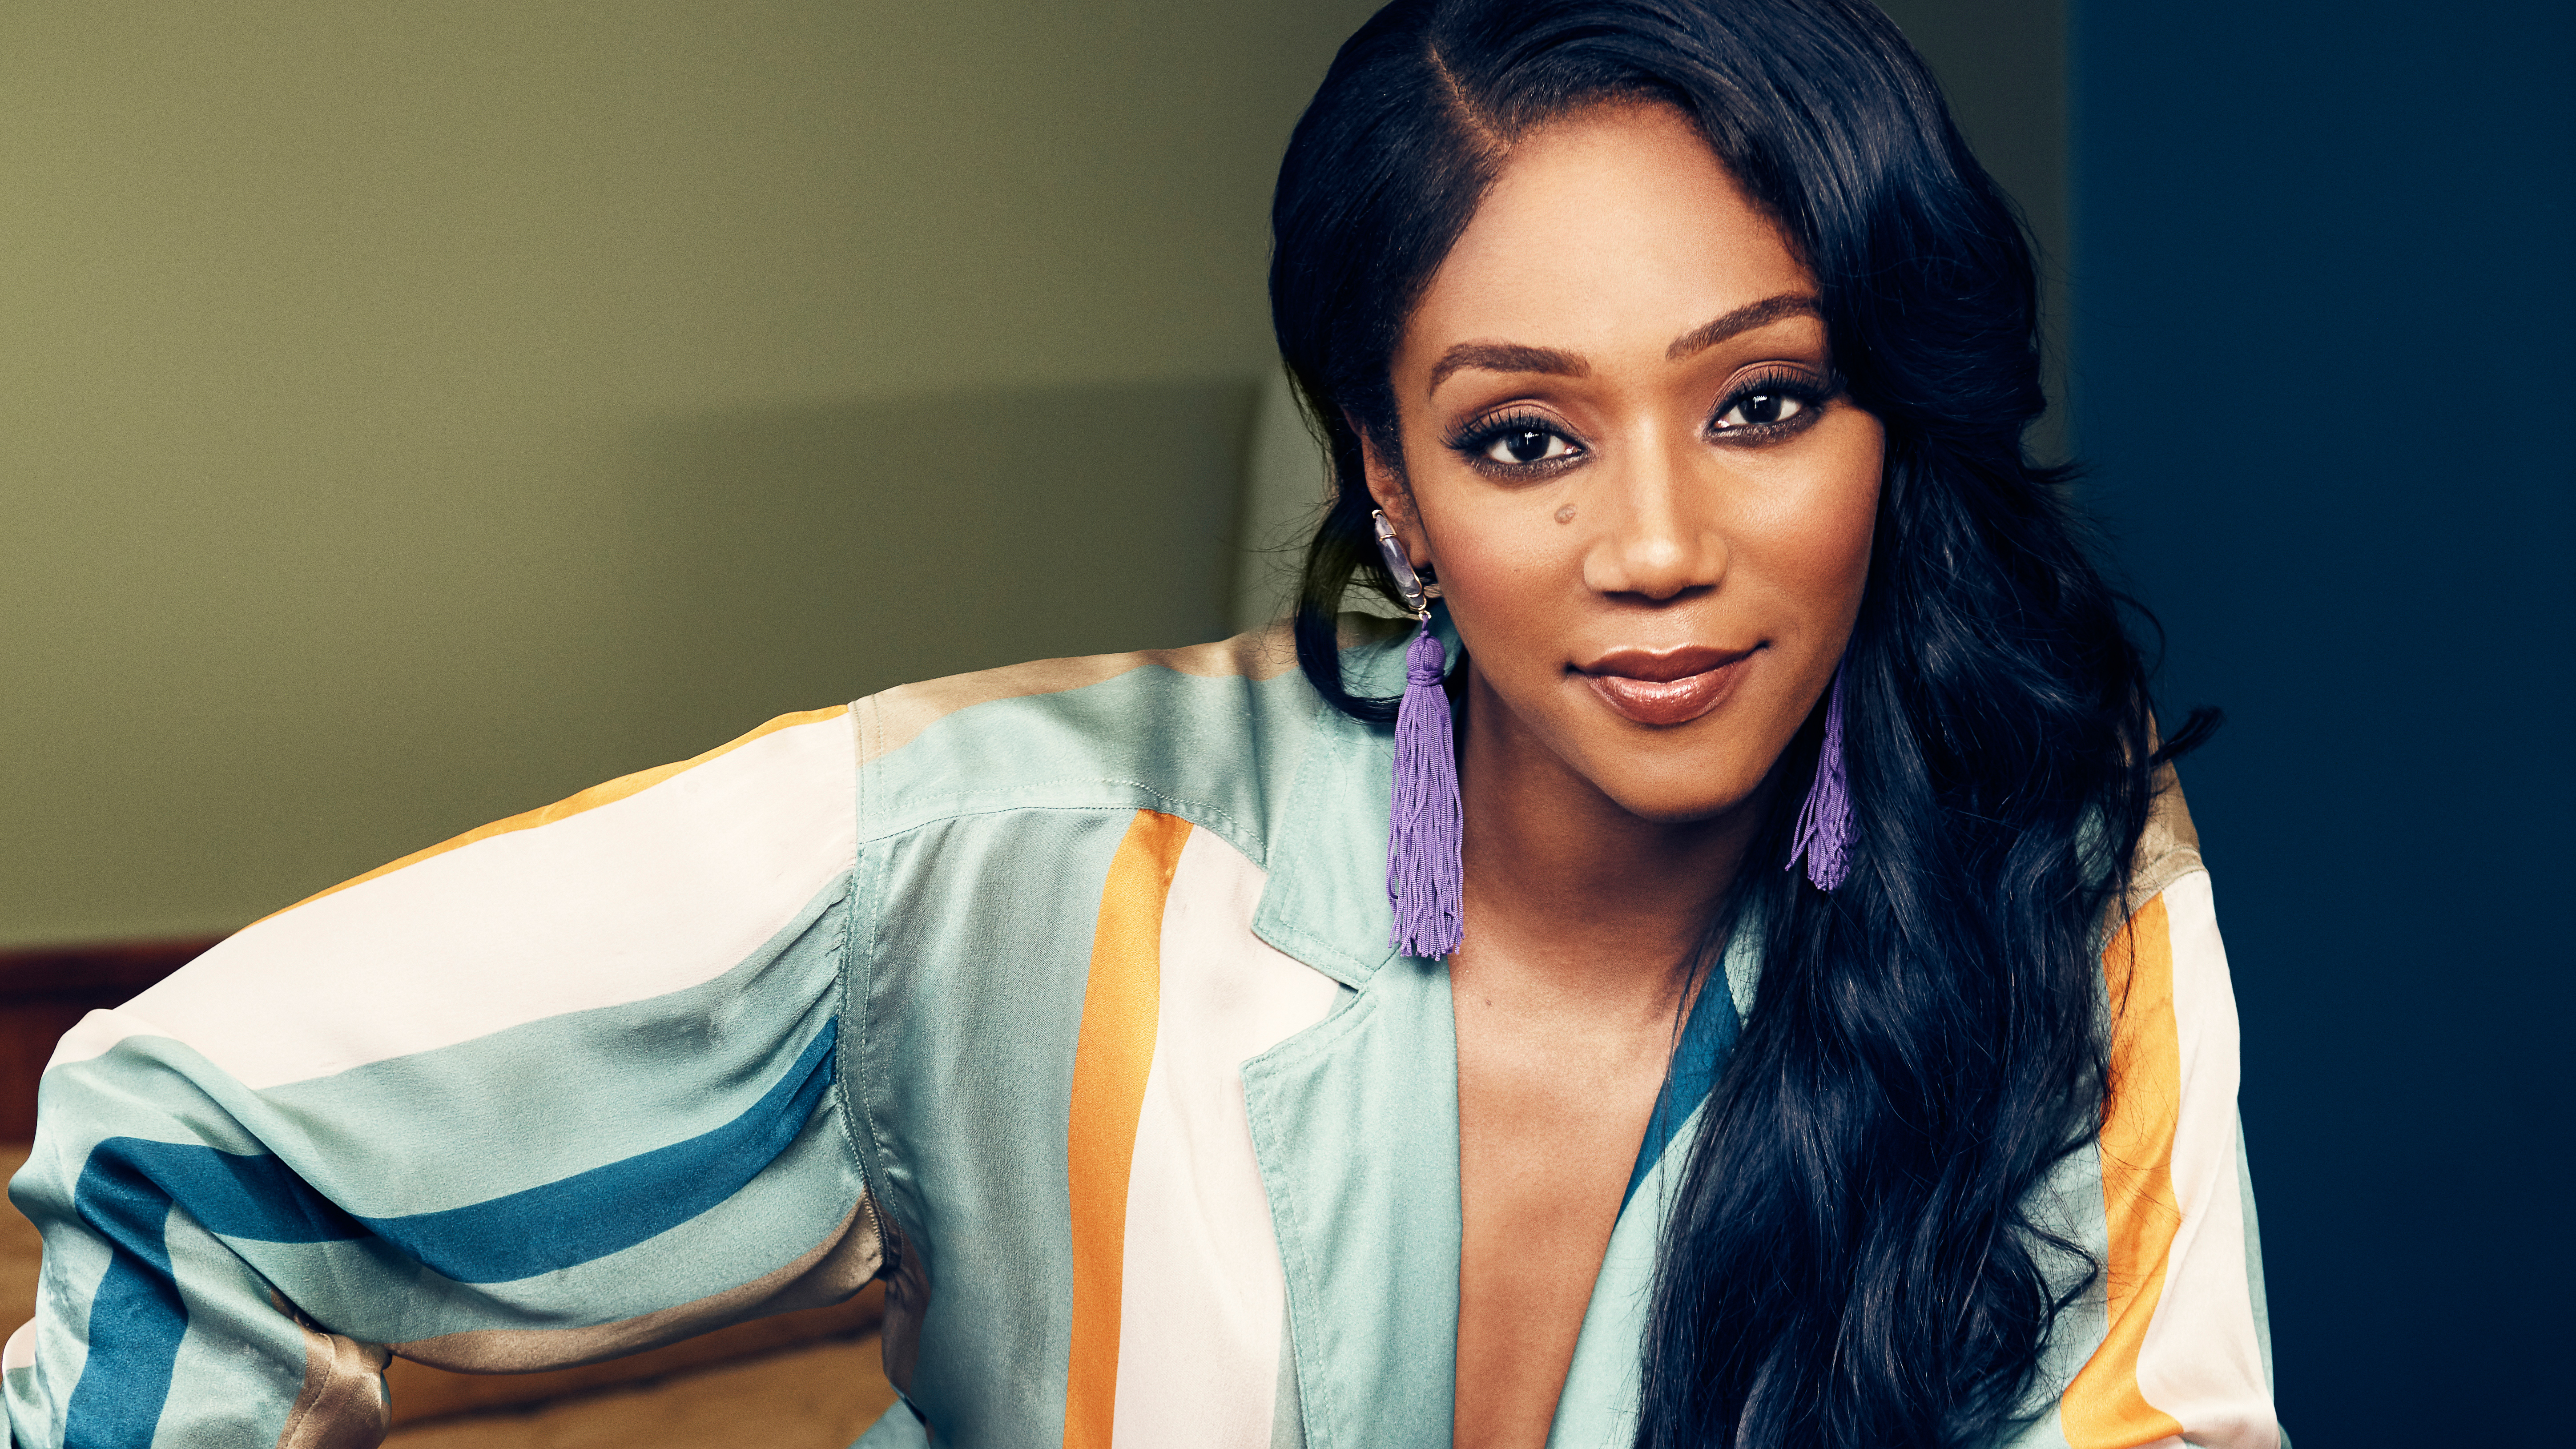 Tiffany Haddish Hd Celebrities 4k Wallpapers Images Backgrounds Photos And Pictures